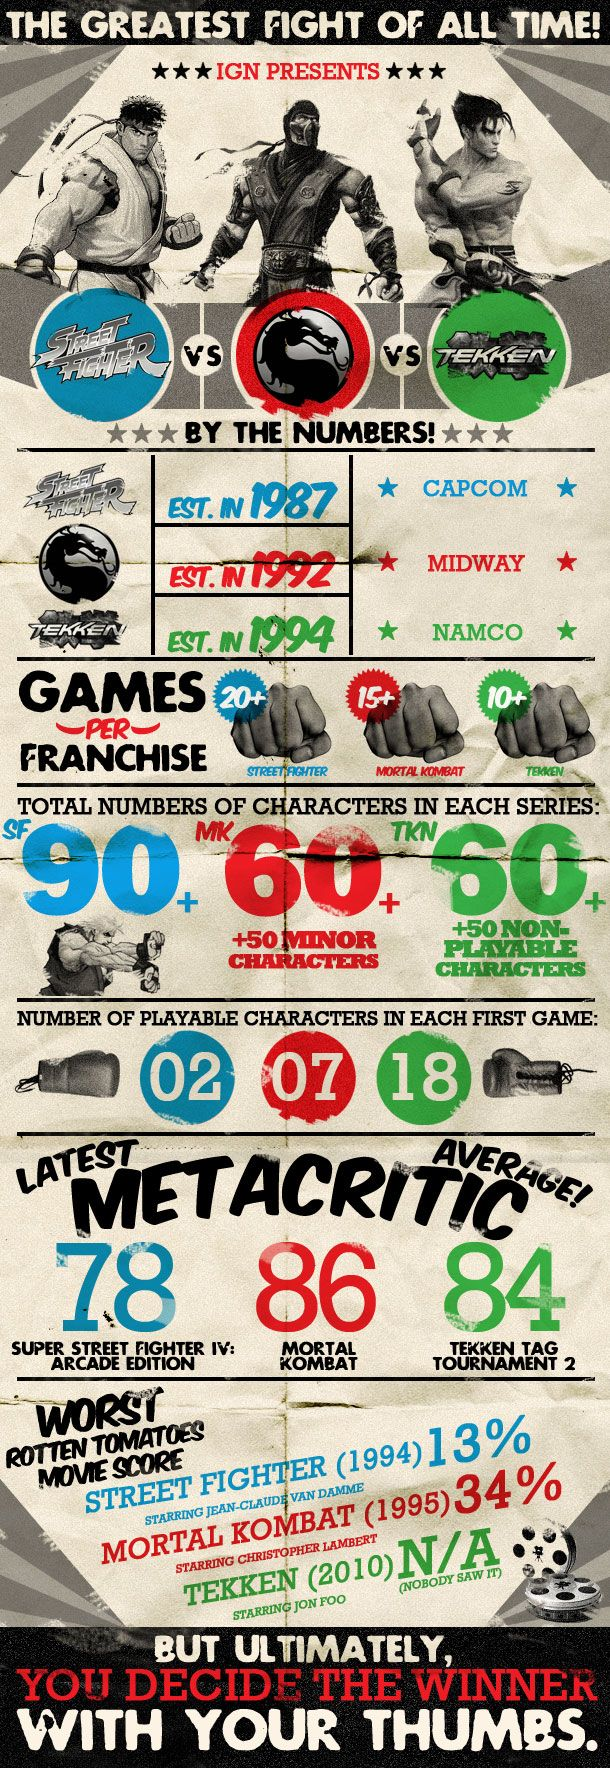 "The previous pinner said: ""Street Fighter vs. Tekken vs. Mortal Kombat - IGN"" - Interesting infographic."